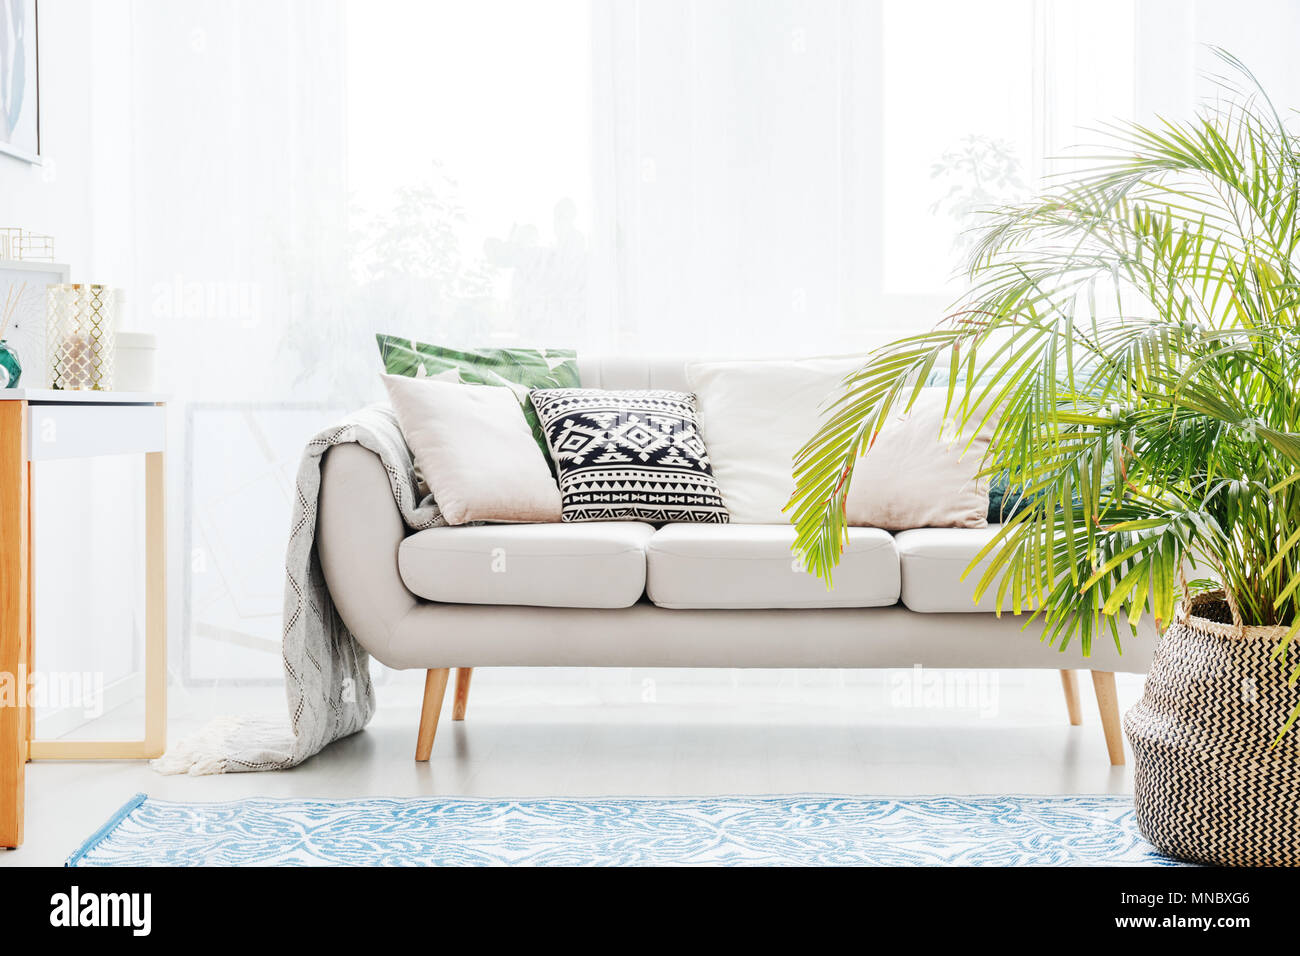 bright sofa legs for sofas and chairs plant next to beige with cushions in living room blue carpet